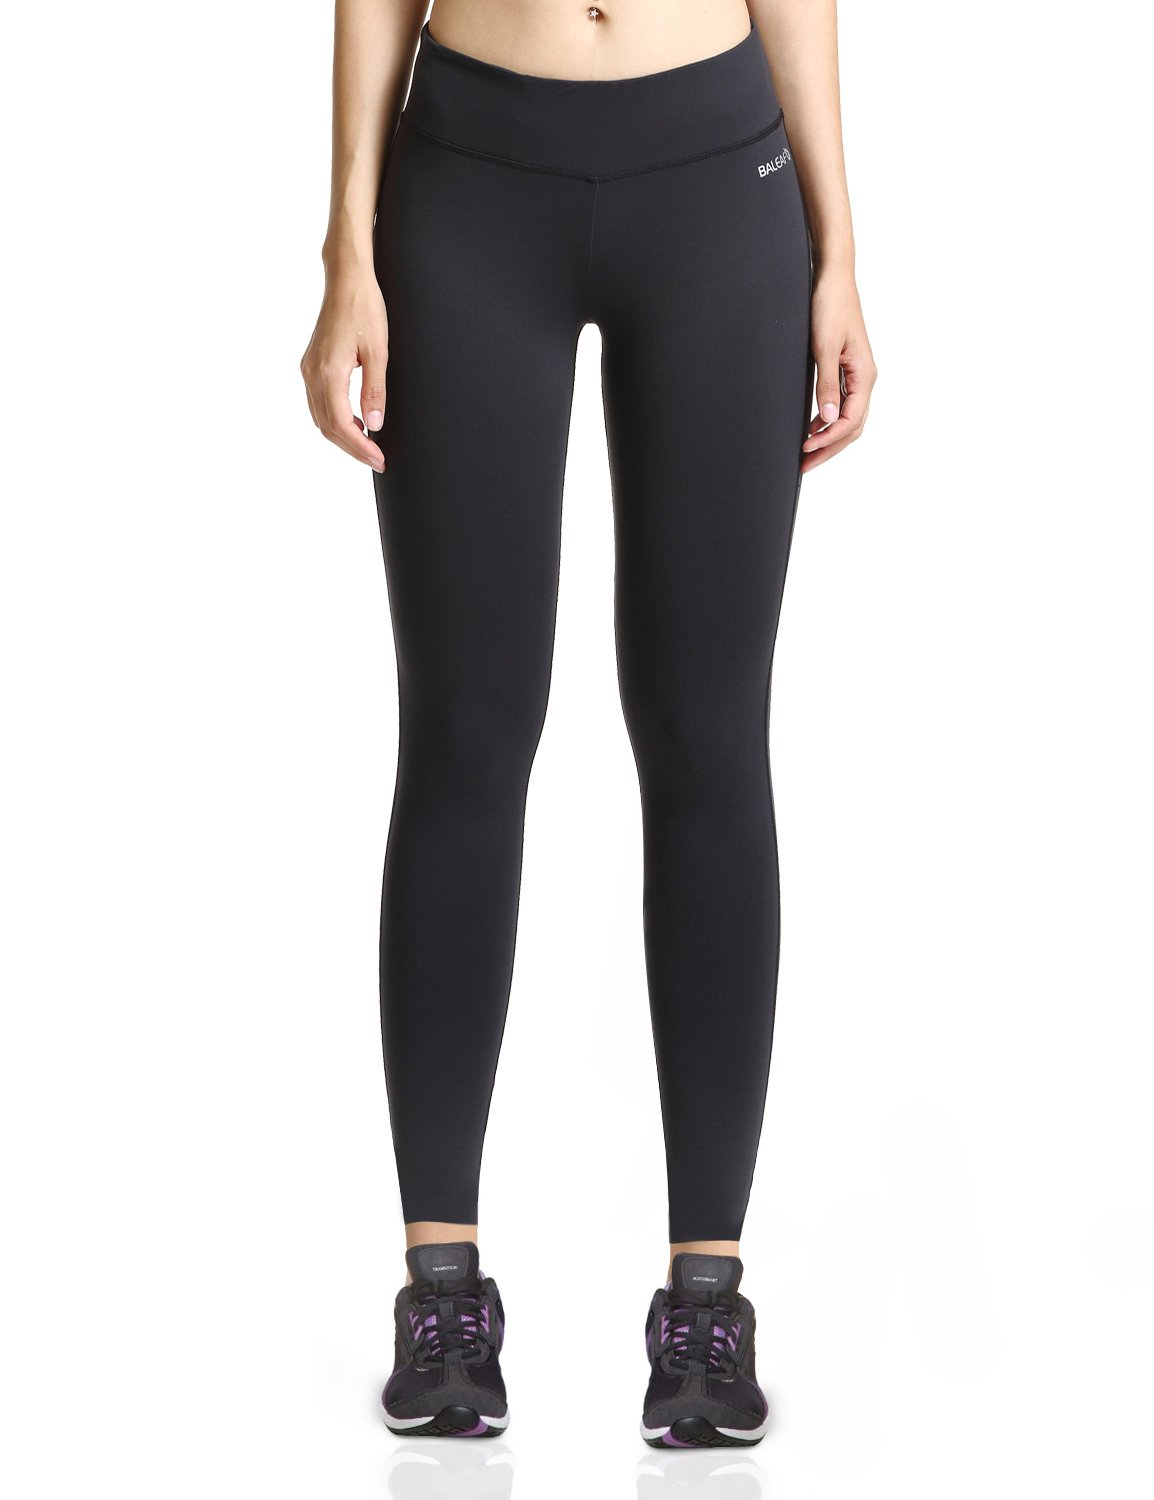 Baleaf Women's Yoga Leggings Power Stretch Workout Pants Running Tights with Pocket